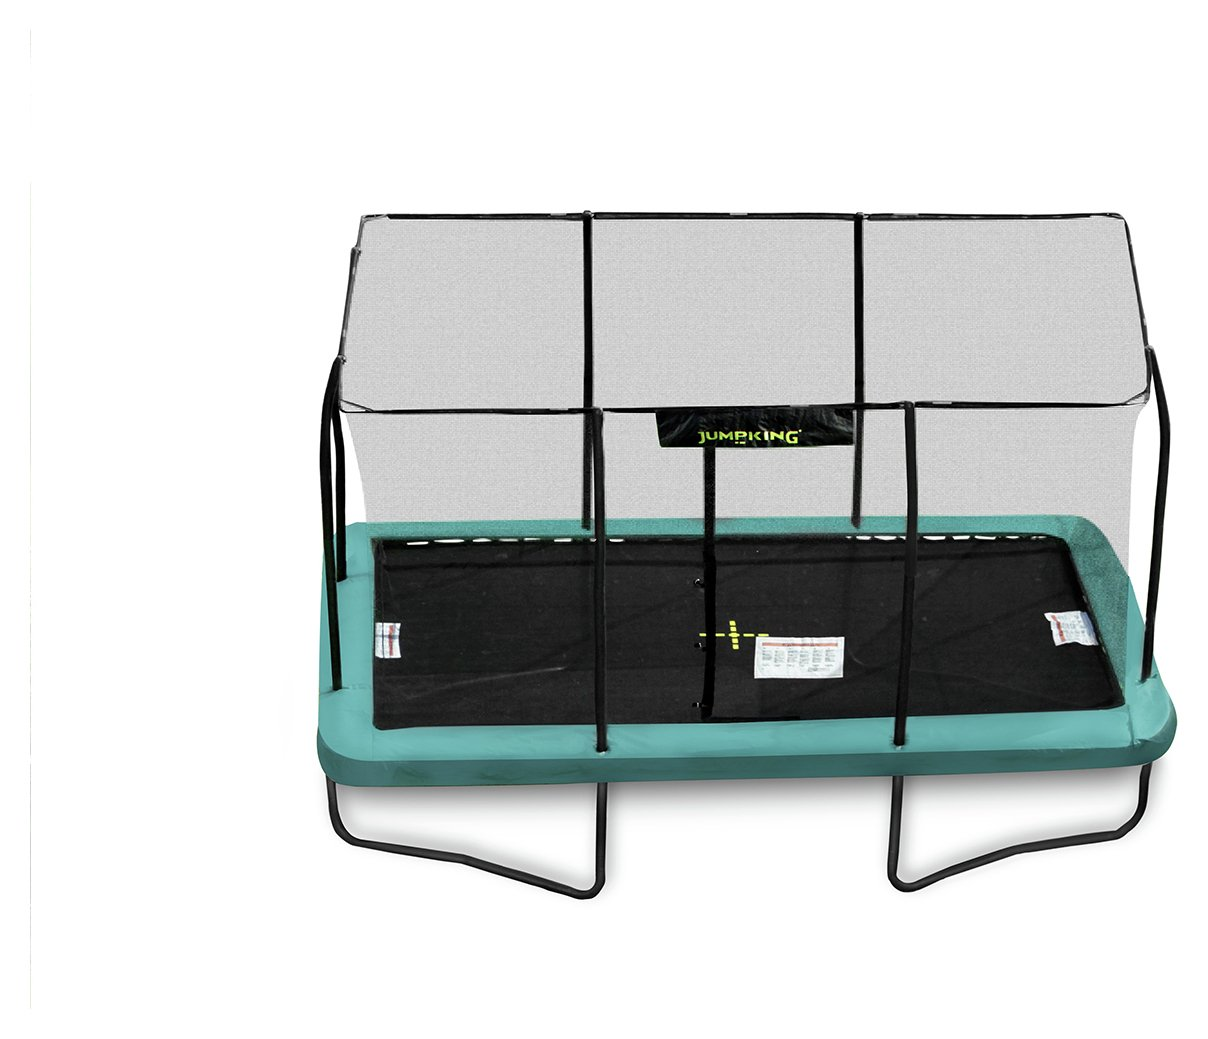 Jumpking 10ft x 14ft Rectangular Trampoline with Enclosure from Jumpking